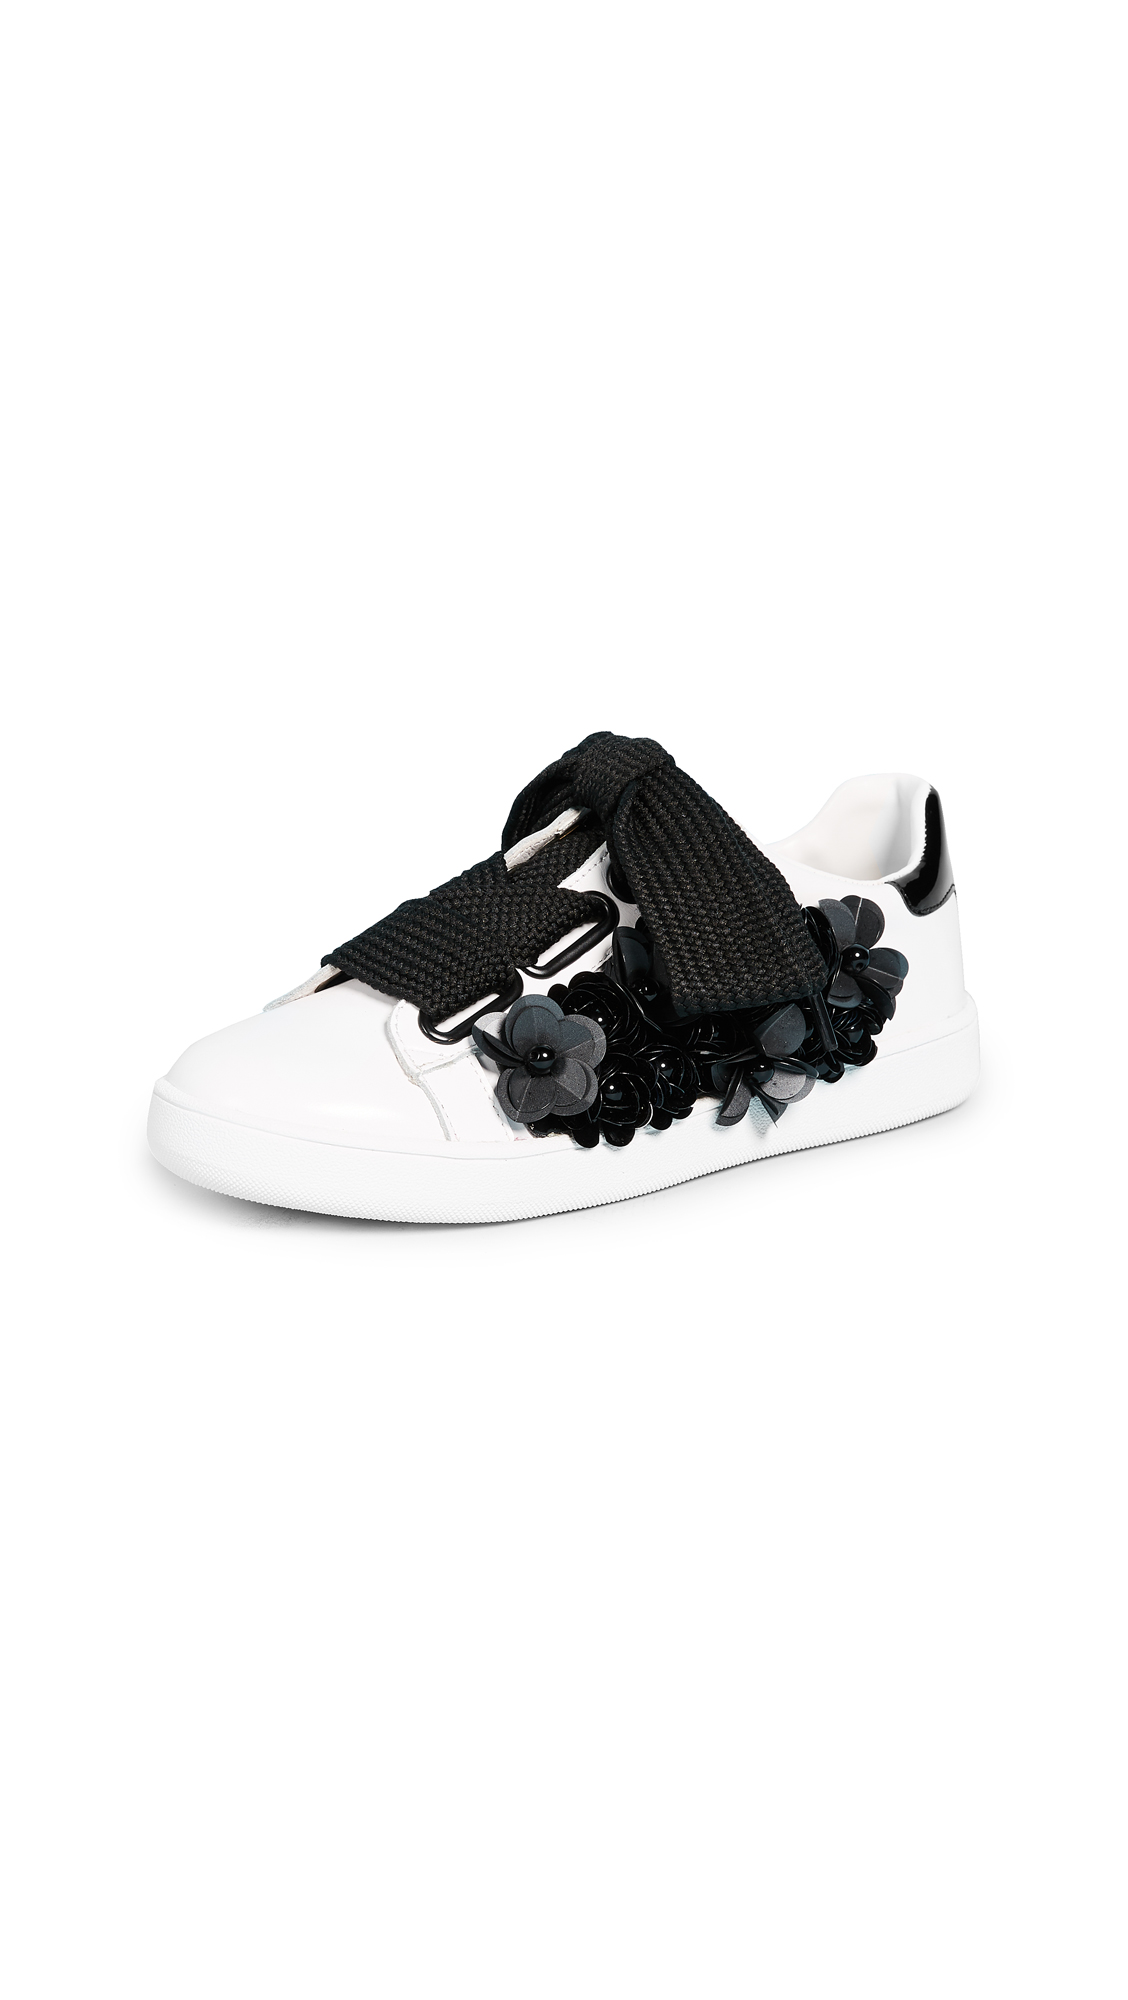 Jeffrey Campbell Pabst Sneakers - White/Black